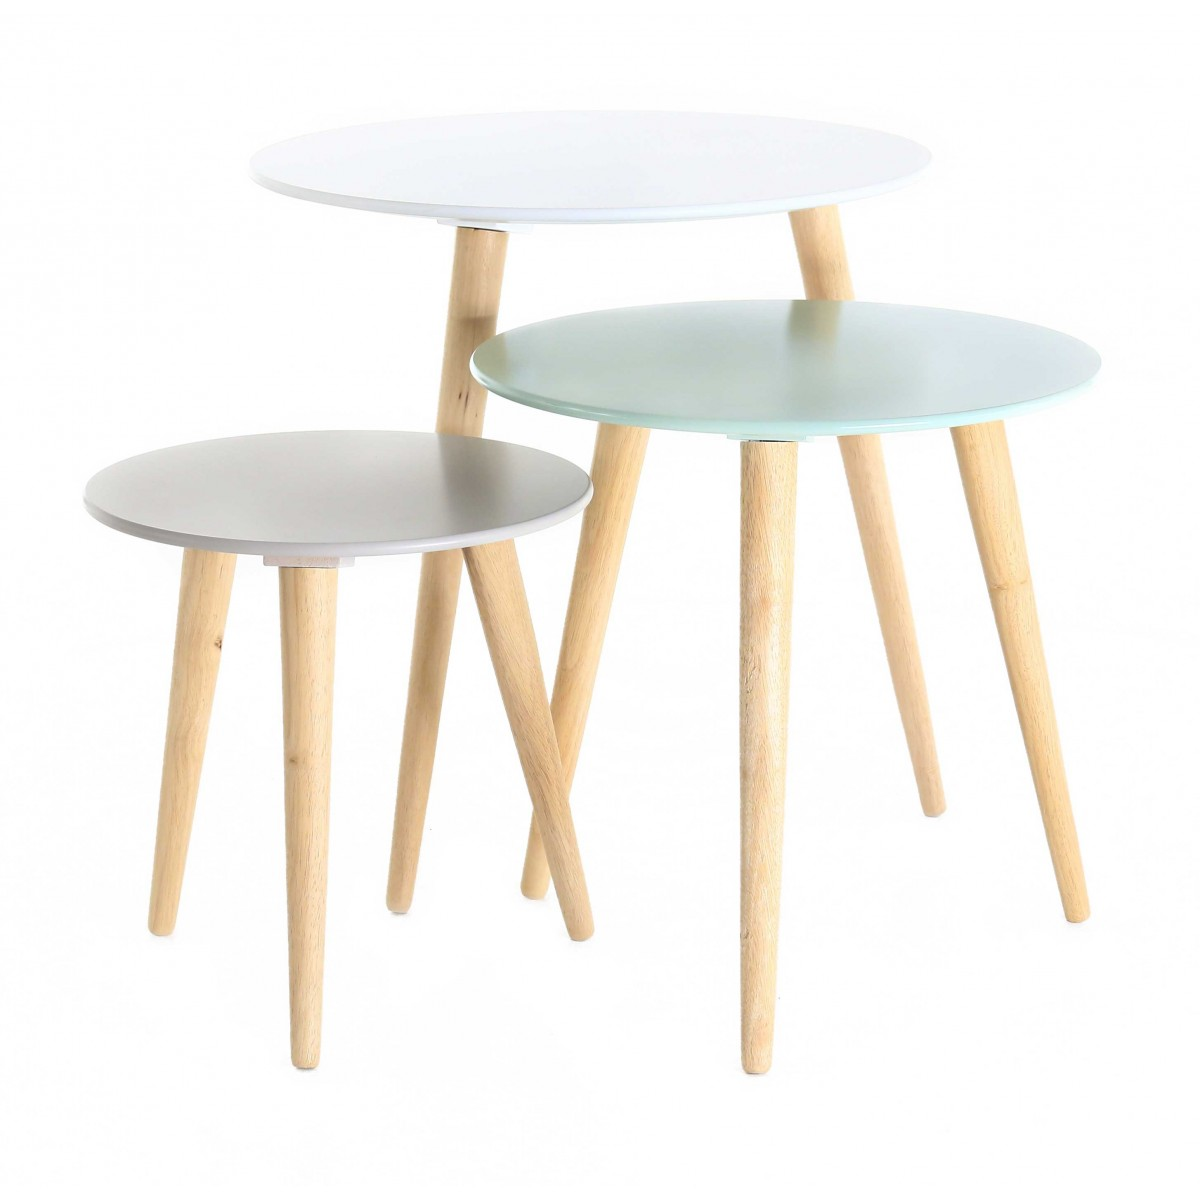 Set de 3 tables gigognes rondes scandinaves mooviin - Table ronde grise ...